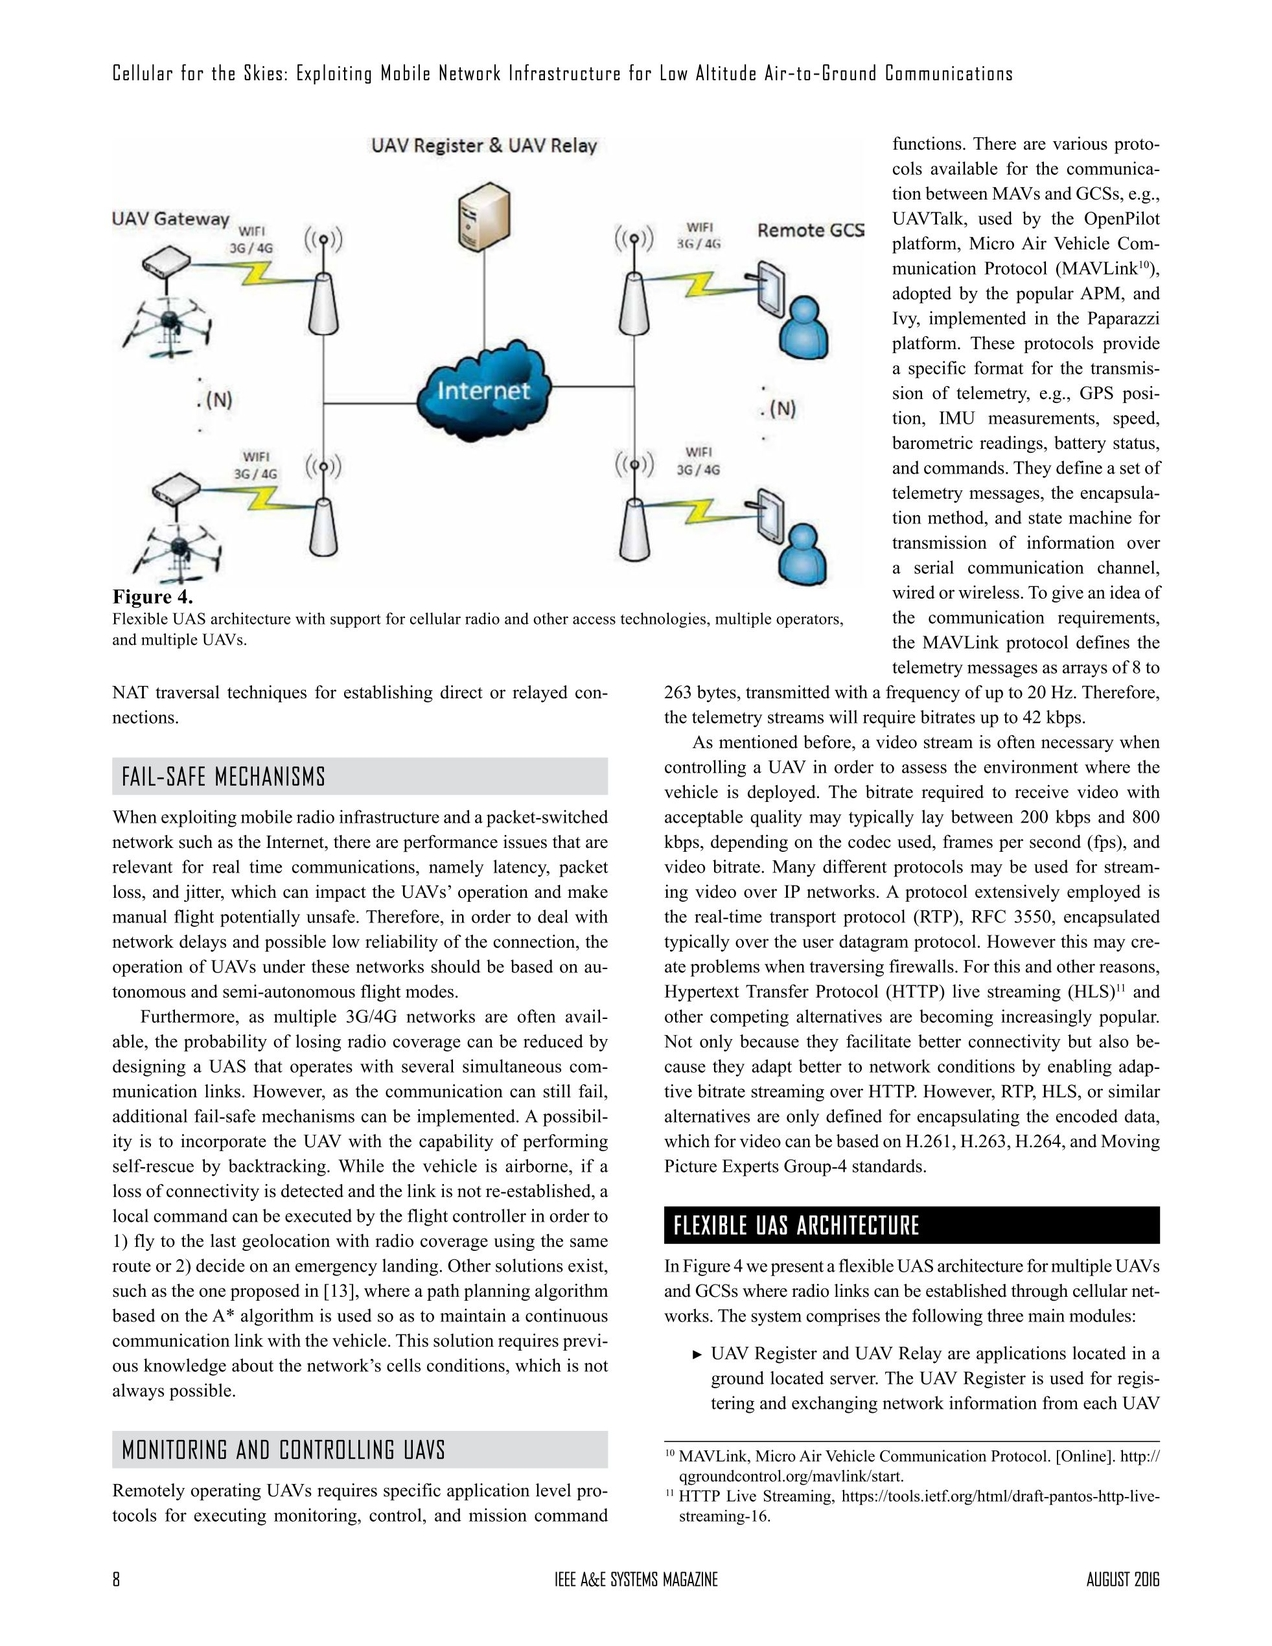 Aerospace and Electronic Systems Magazine August 2016